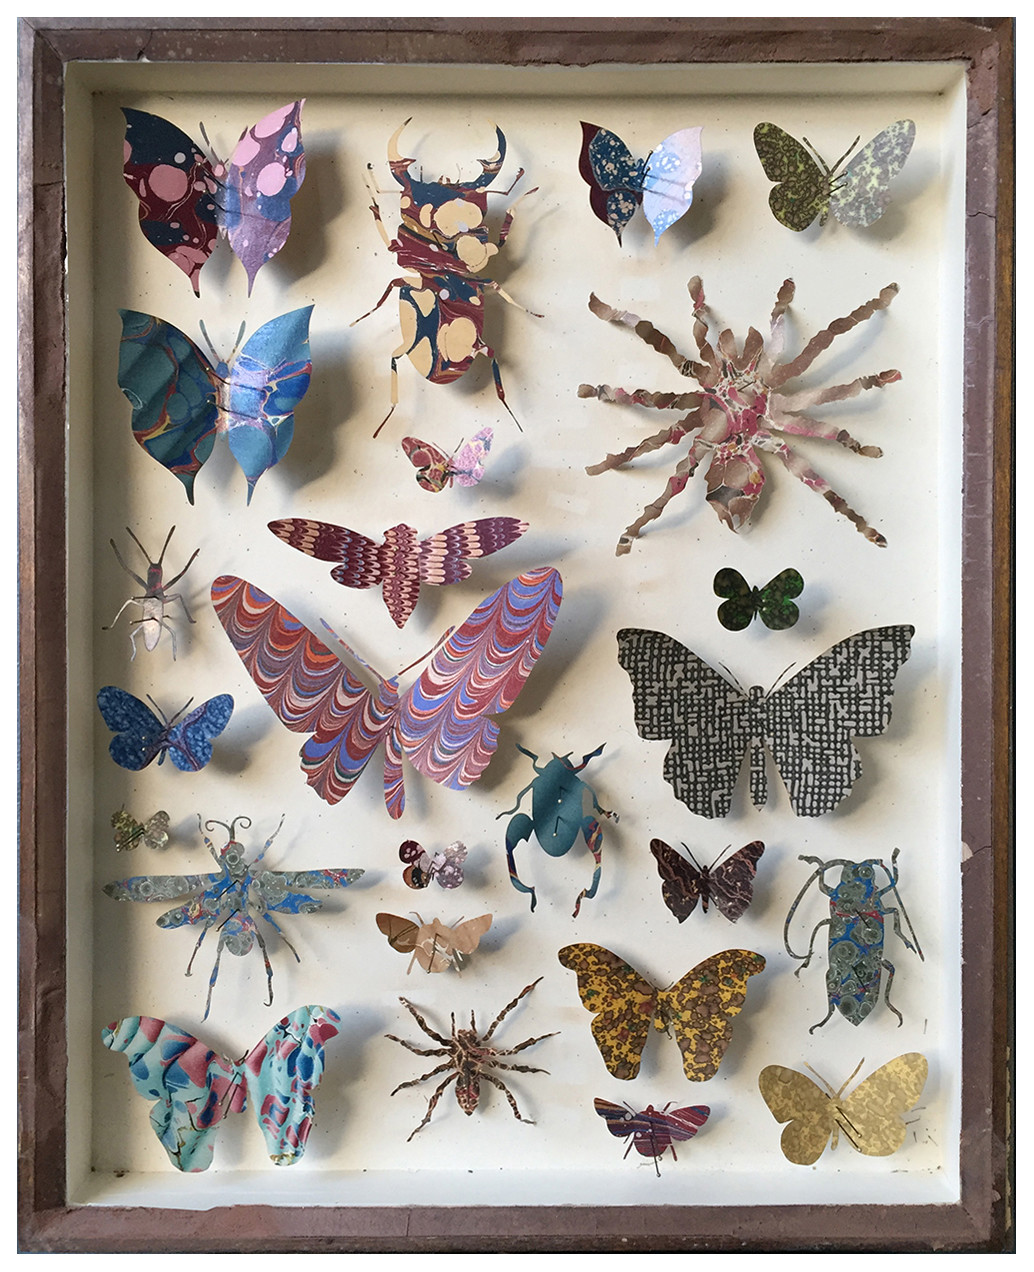 "<span class=""link fancybox-details-link""><a href=""/artists/142-helen-ward/works/6232-helen-ward-entomology-case-6-2019/"">View Detail Page</a></span><div class=""artist""><strong>Helen Ward</strong></div> <div class=""title""><em>Entomology Case 6</em>, 2019</div> <div class=""medium"">Victorian entomology drawer, hand-marbled papers, enamel pins</div> <div class=""dimensions"">39 x 29 cm</div><div class=""price"">£595.00</div><div class=""copyright_line"">Own Art: £ 59.50 x 10 Monthly 0% APR Representative Payments</div>"